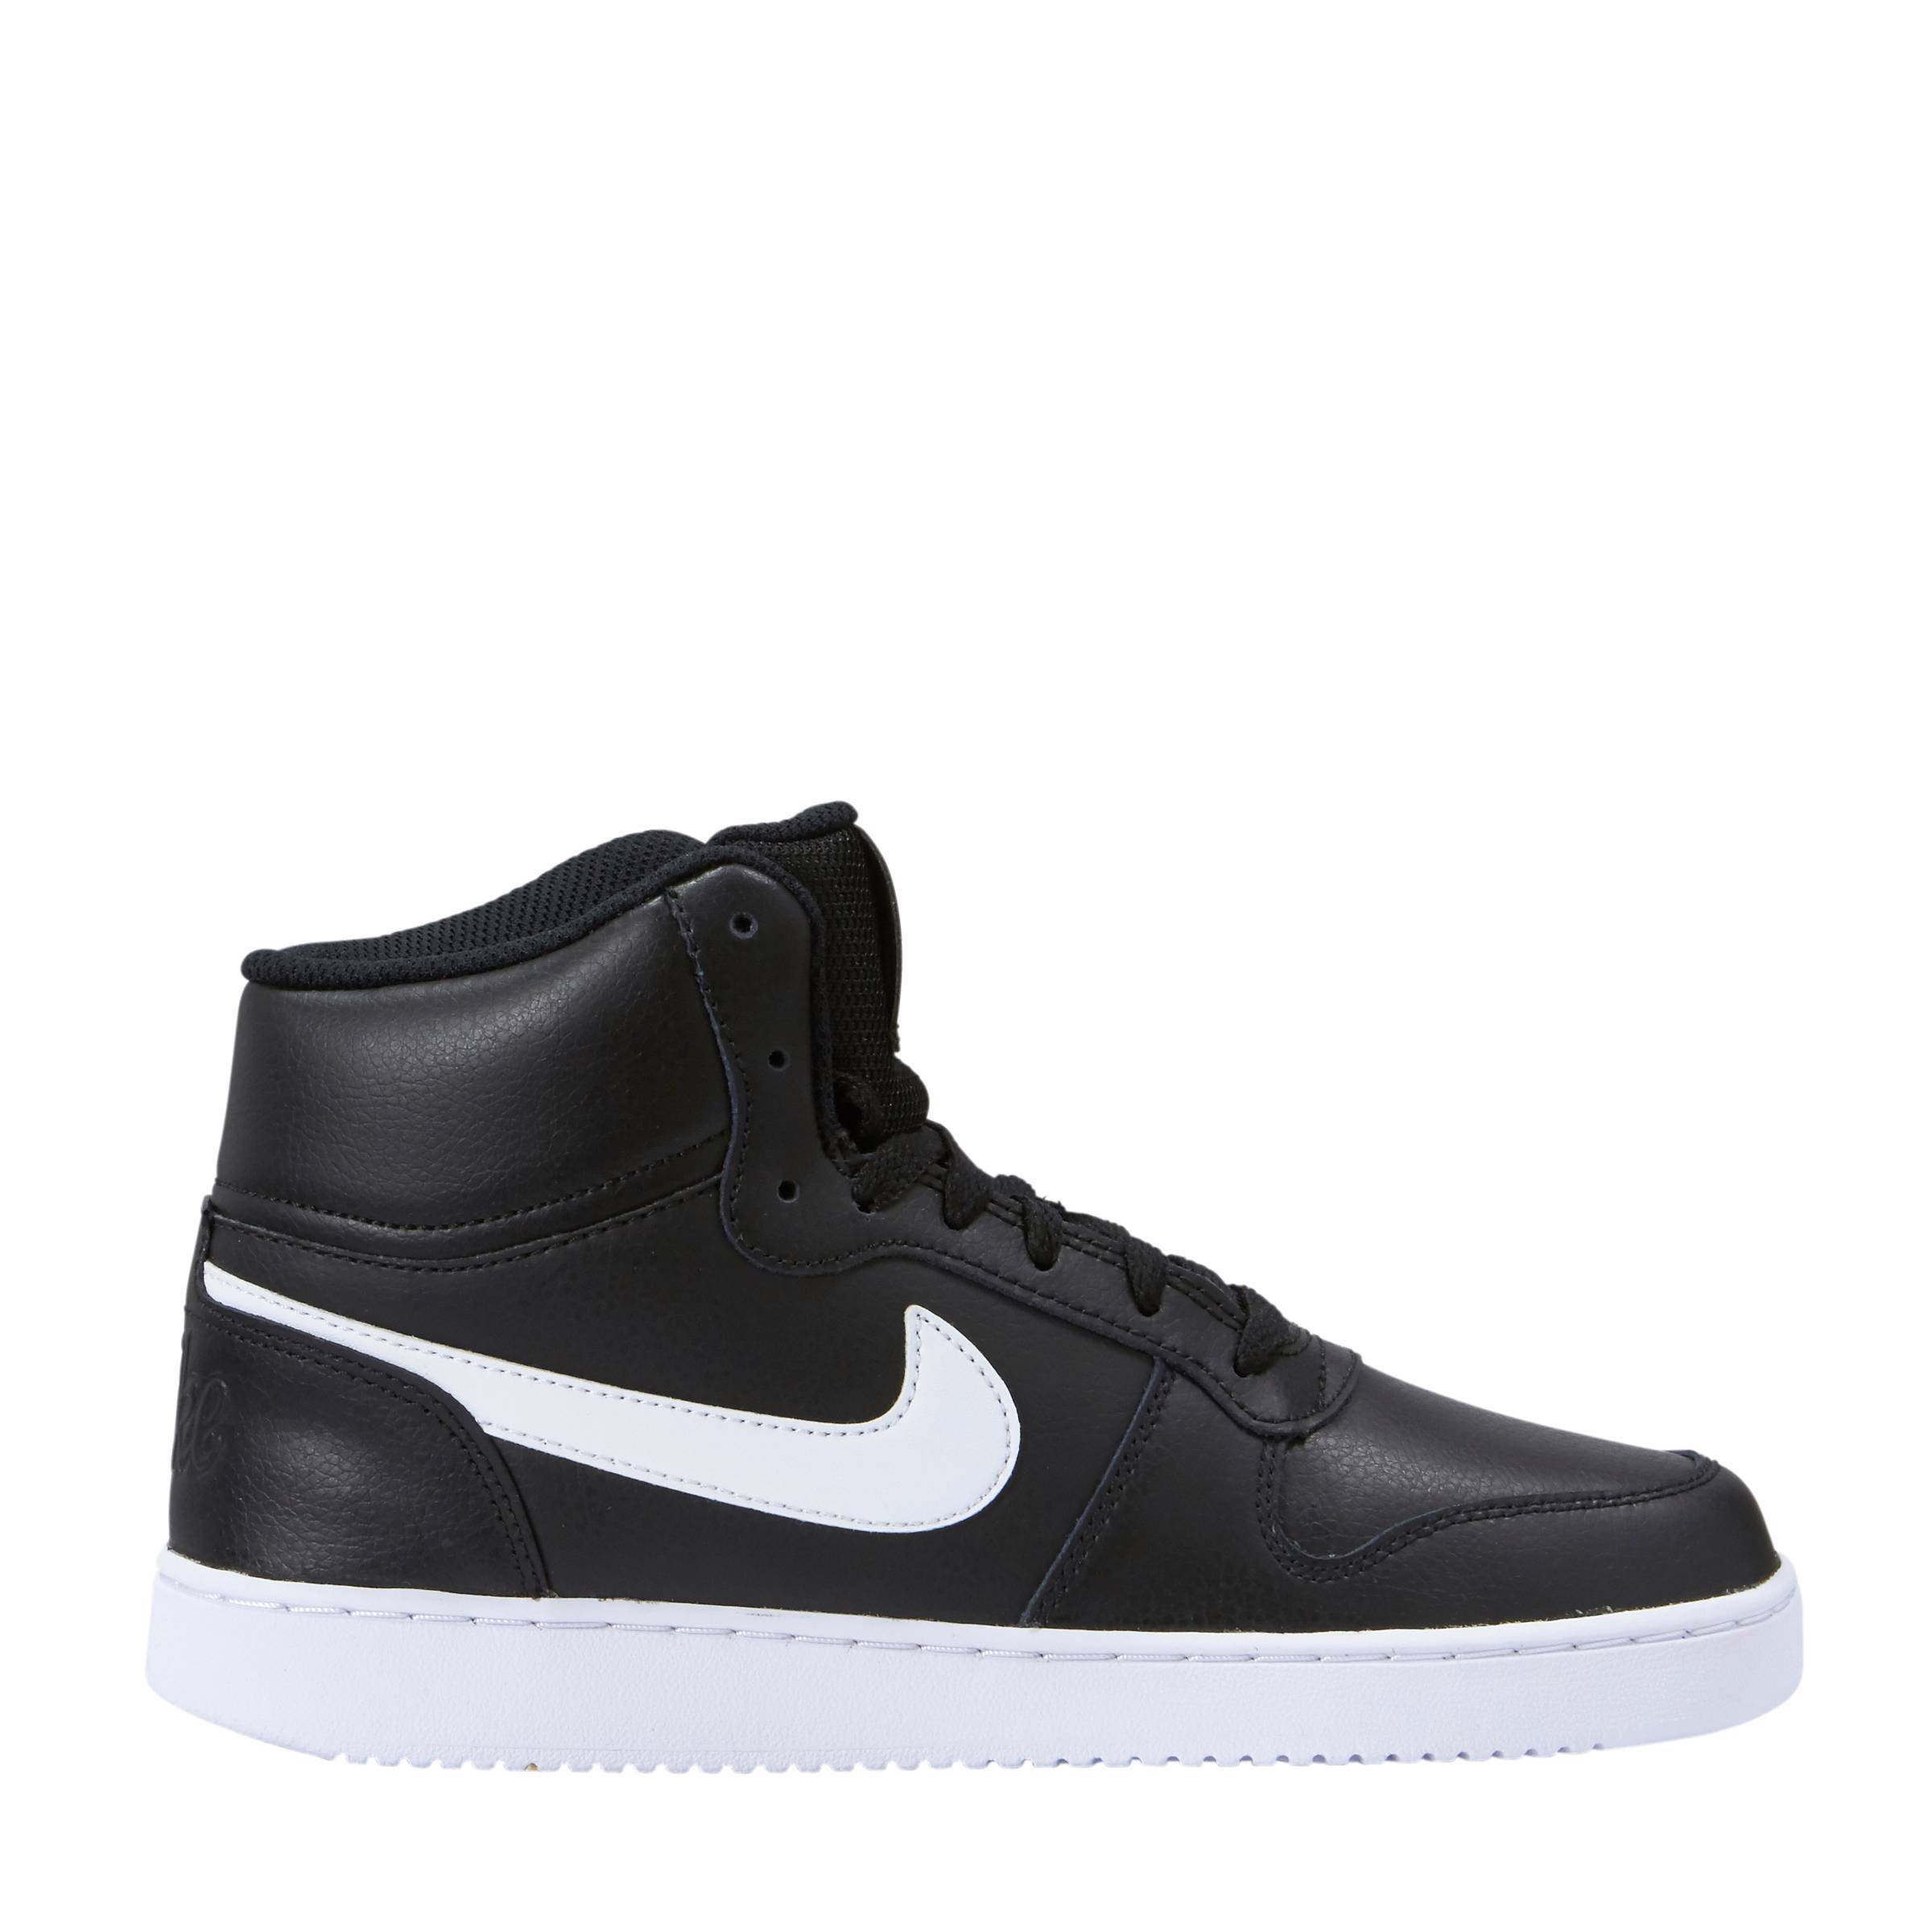 sneakers for cheap 2c44c 6c665 Nike Ebernon Mid sneakers   wehkamp